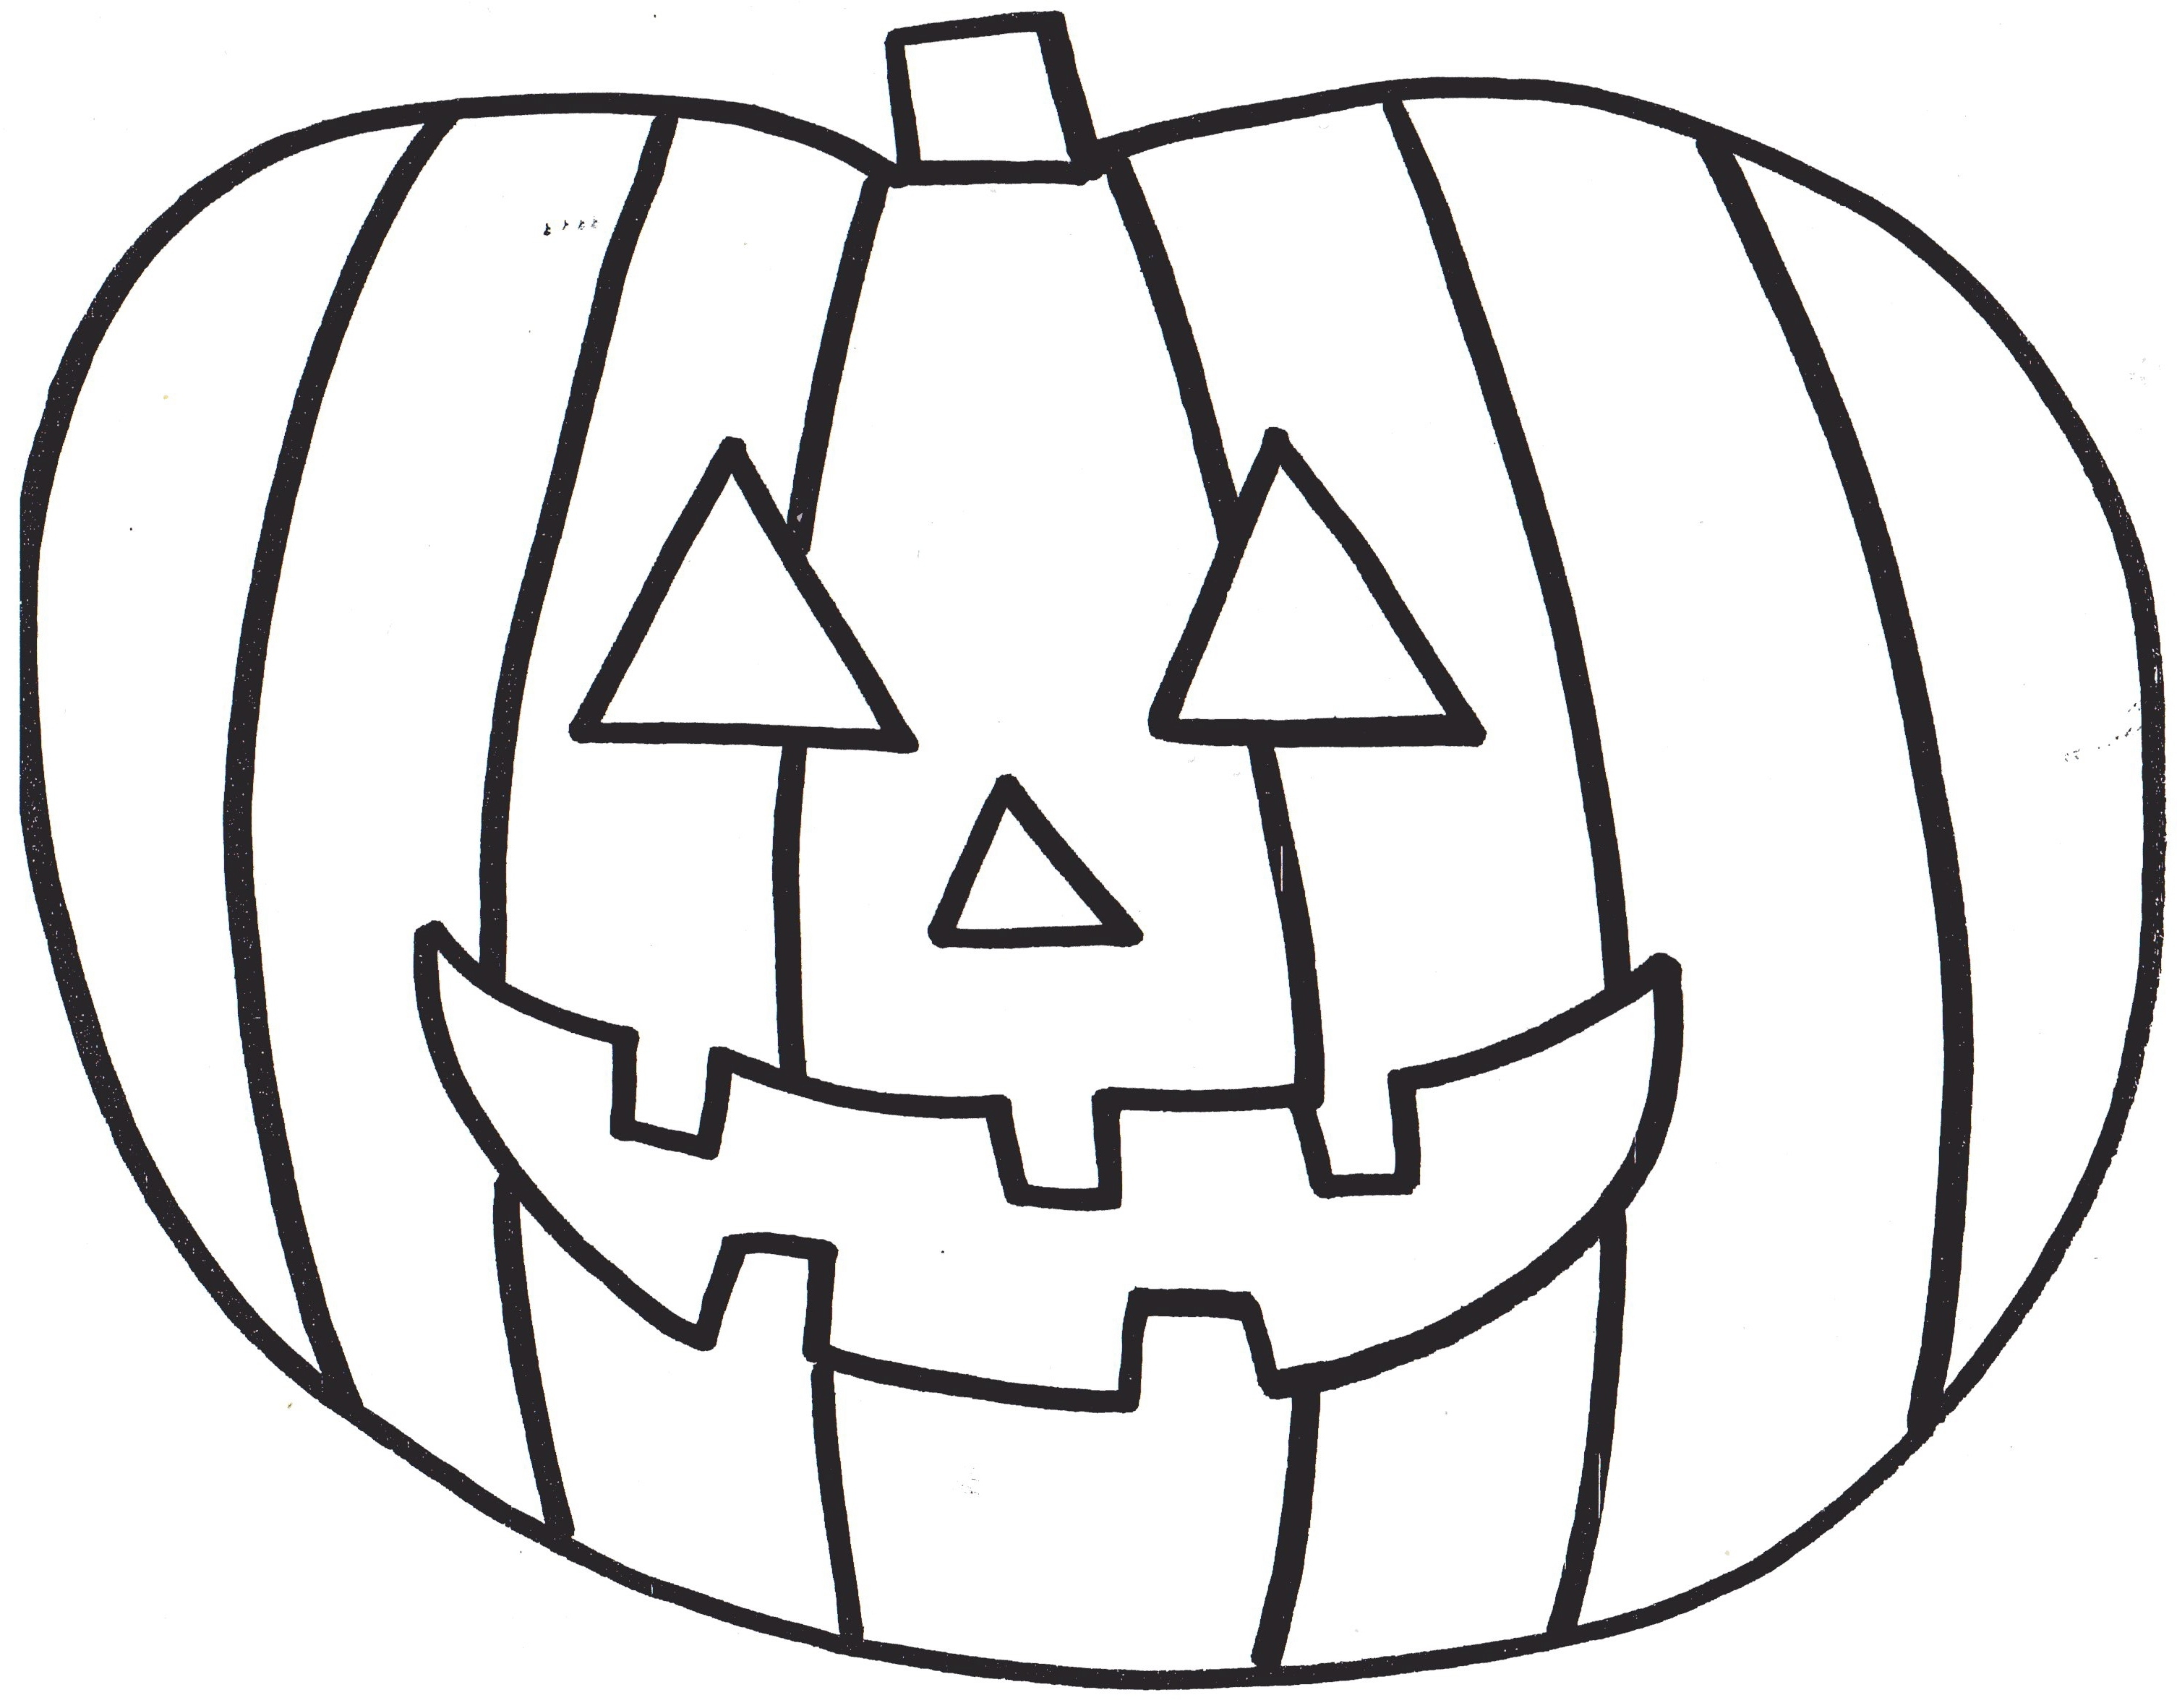 Halloween Pumpkin Coloring Pages Printables Pretentious Design Coloring Pages Of Pumpkins Unique Collection